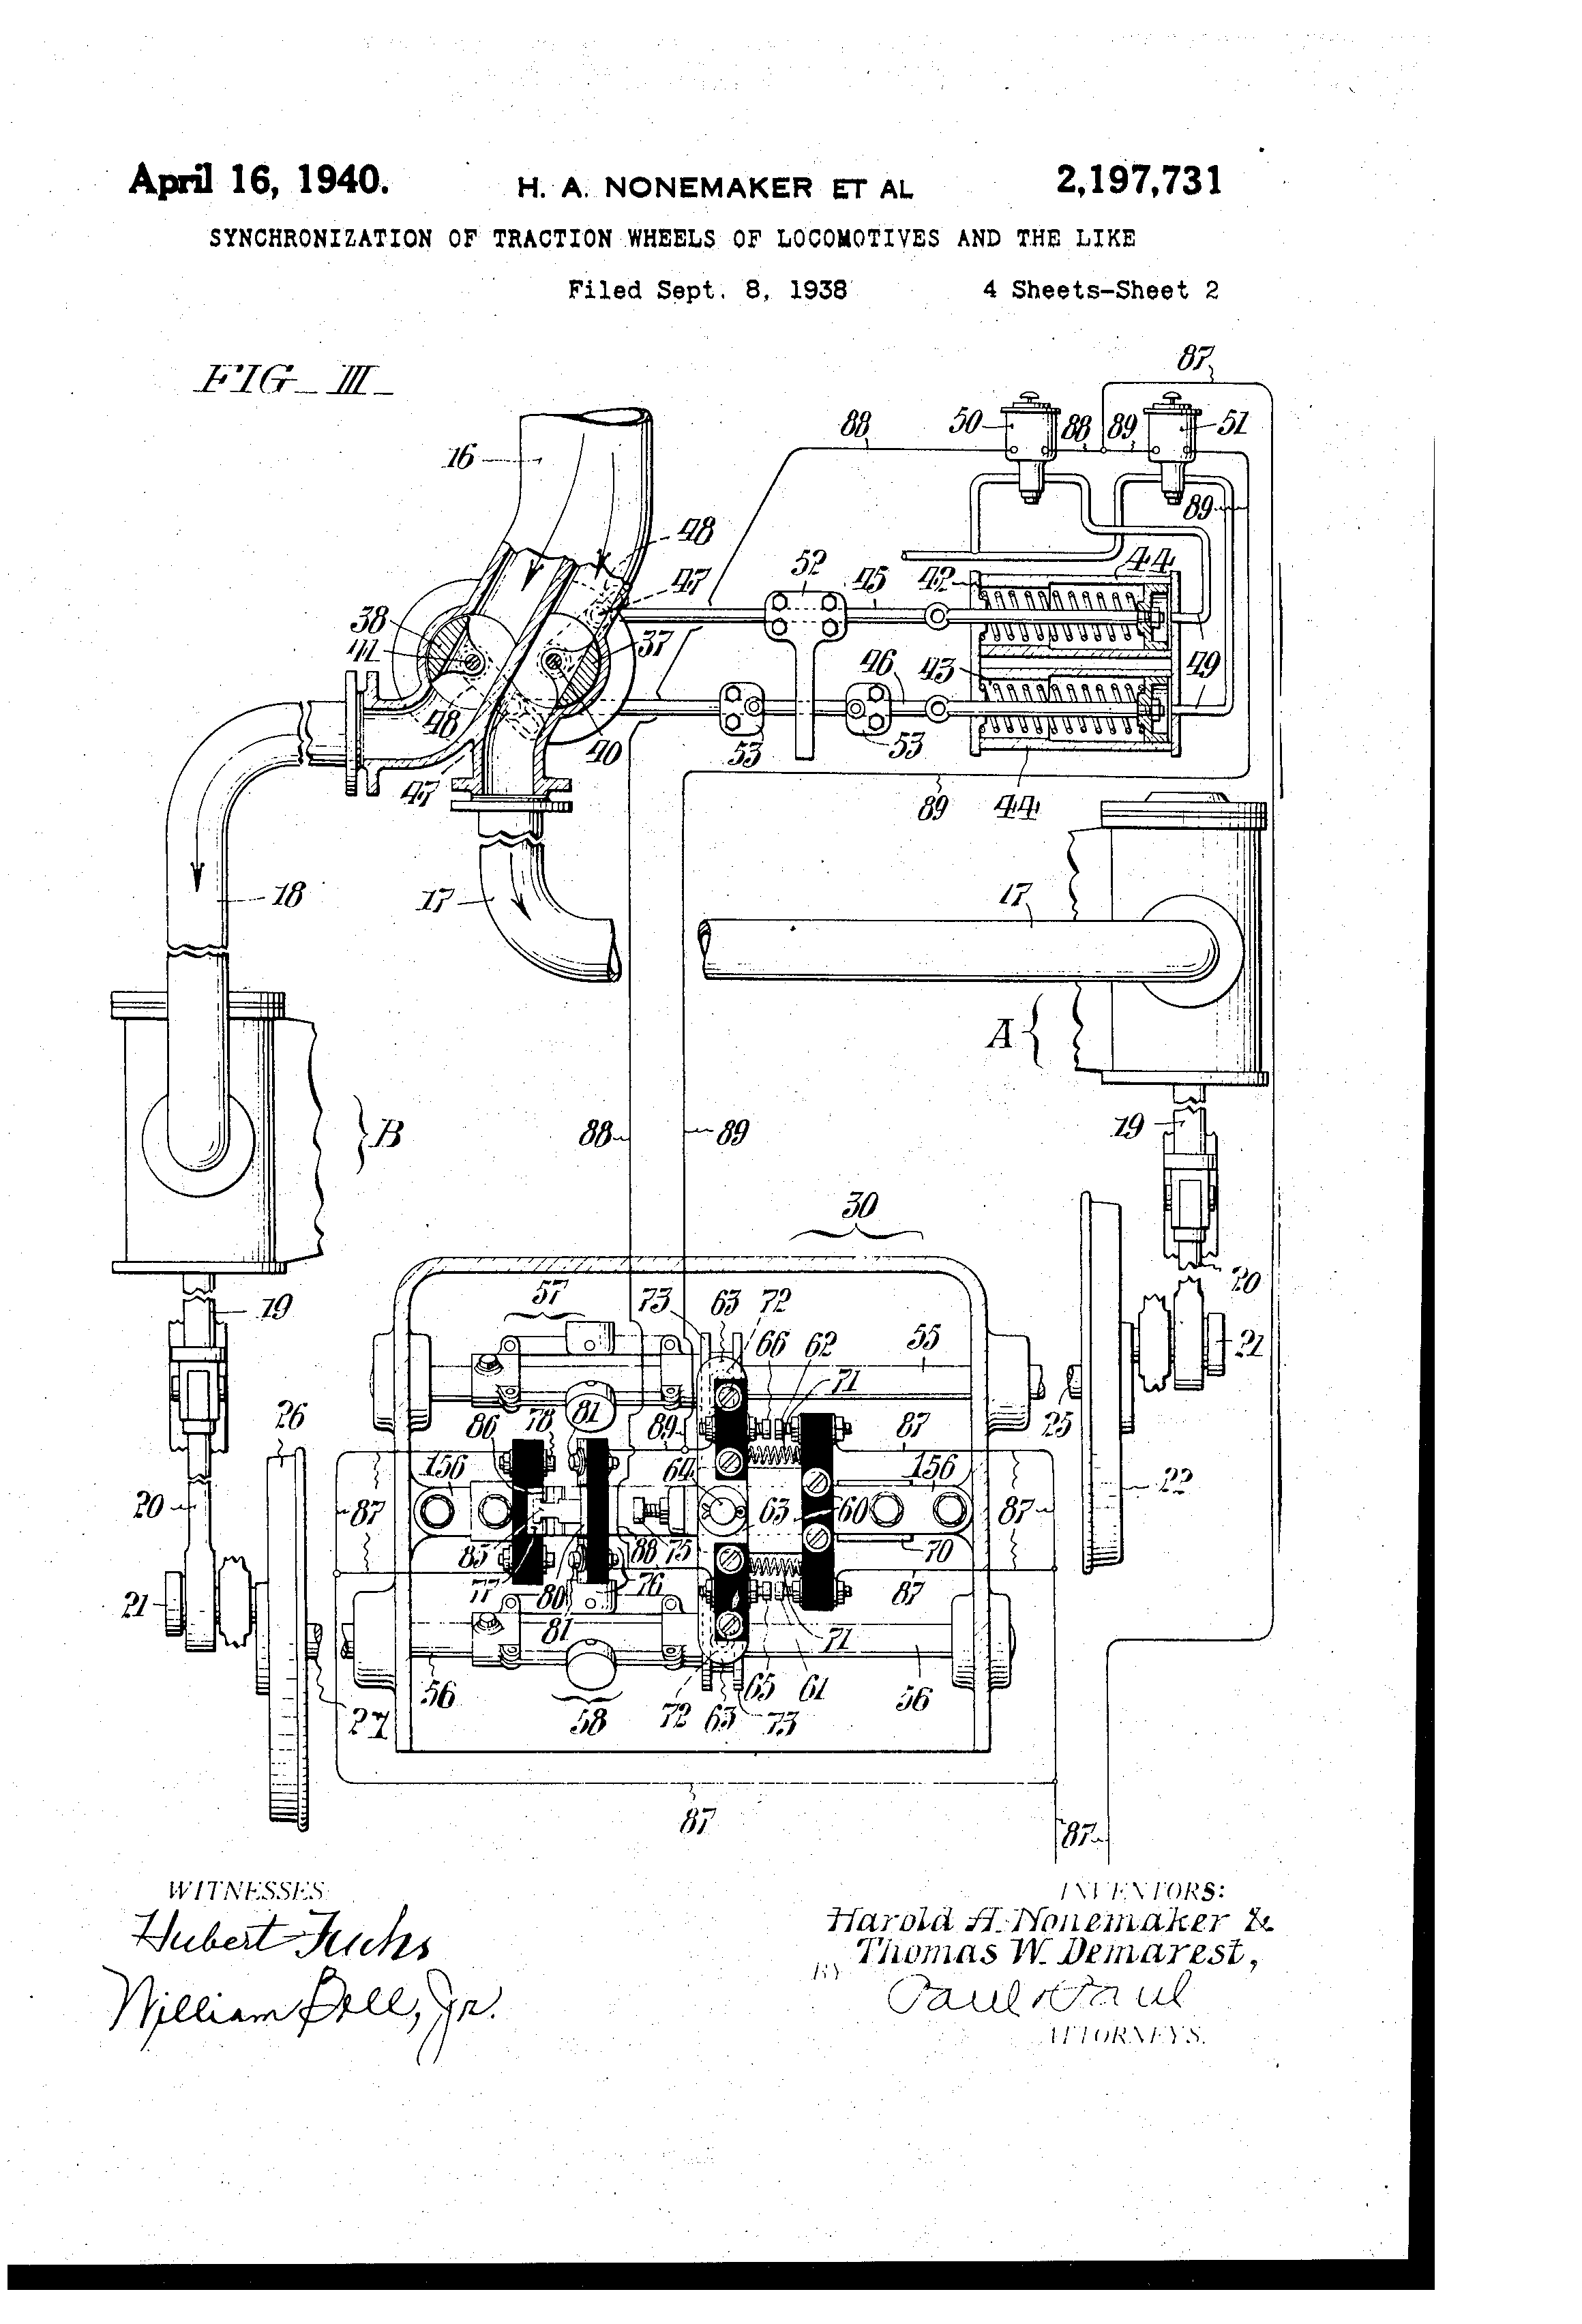 Prr Duplexes And Experimental Engines S1 S2 T1 Q1 V1